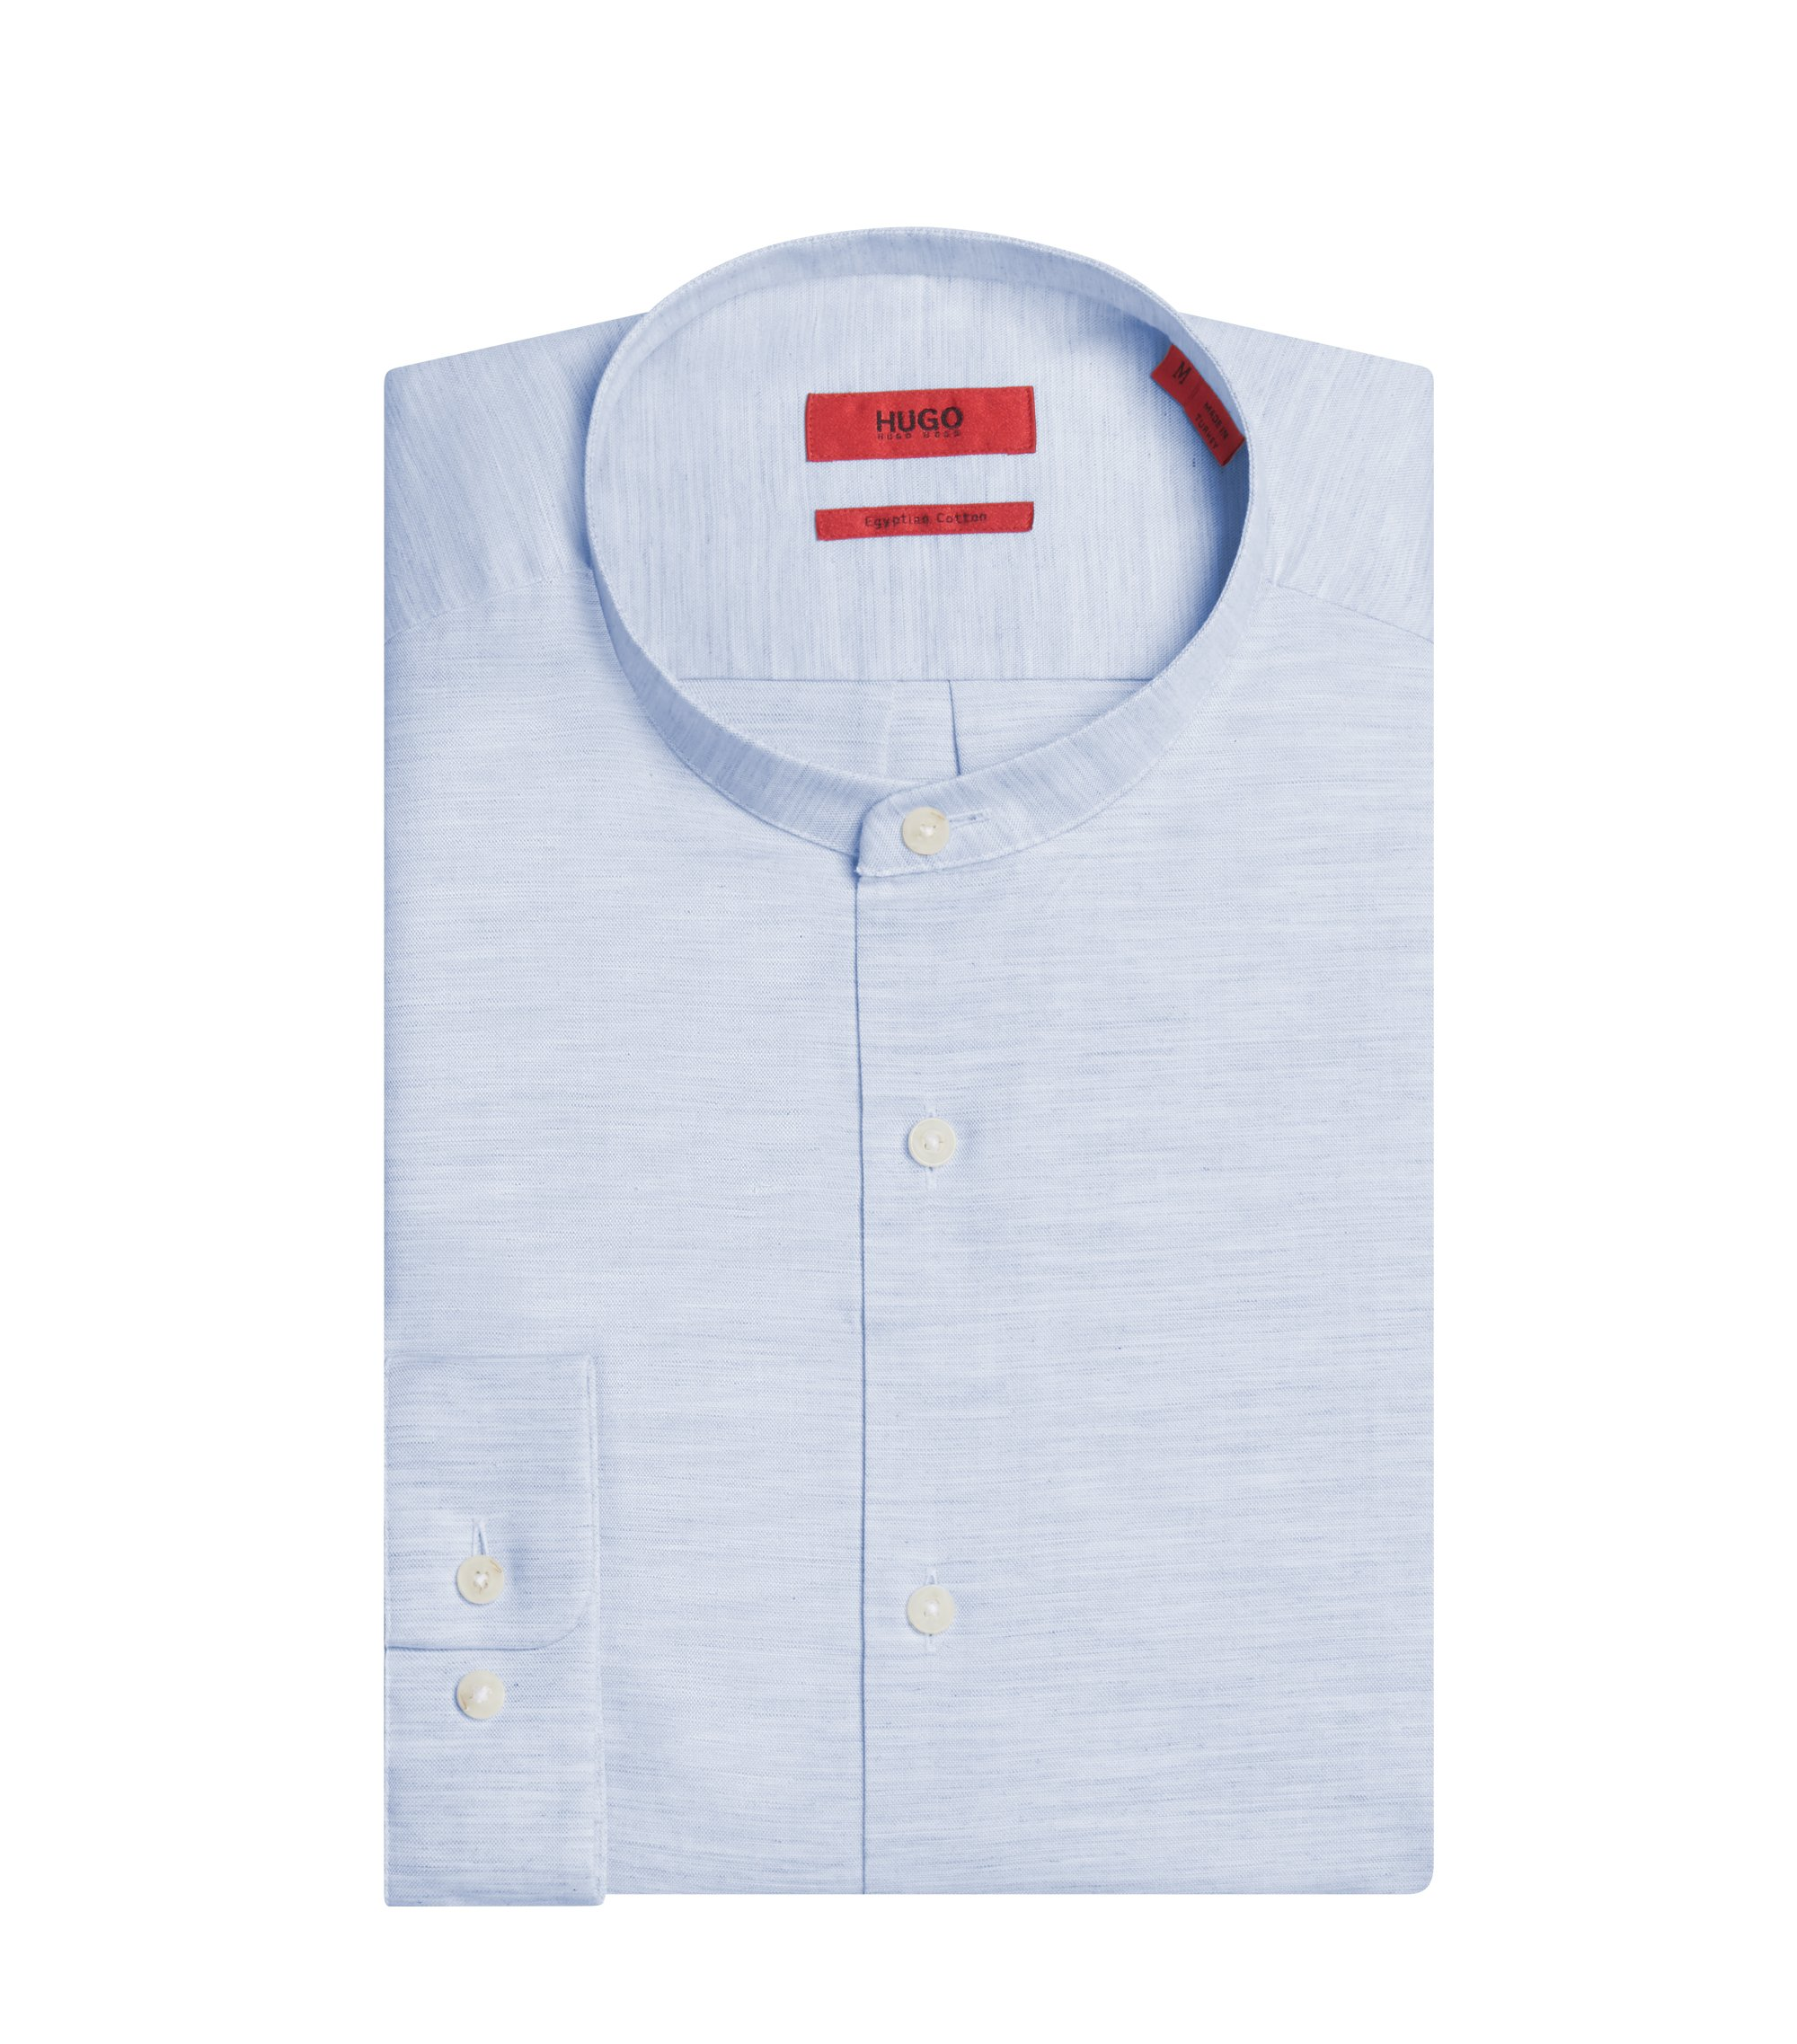 Cotton Sport Shirt, Regular Fit | Eddison W, Light Blue